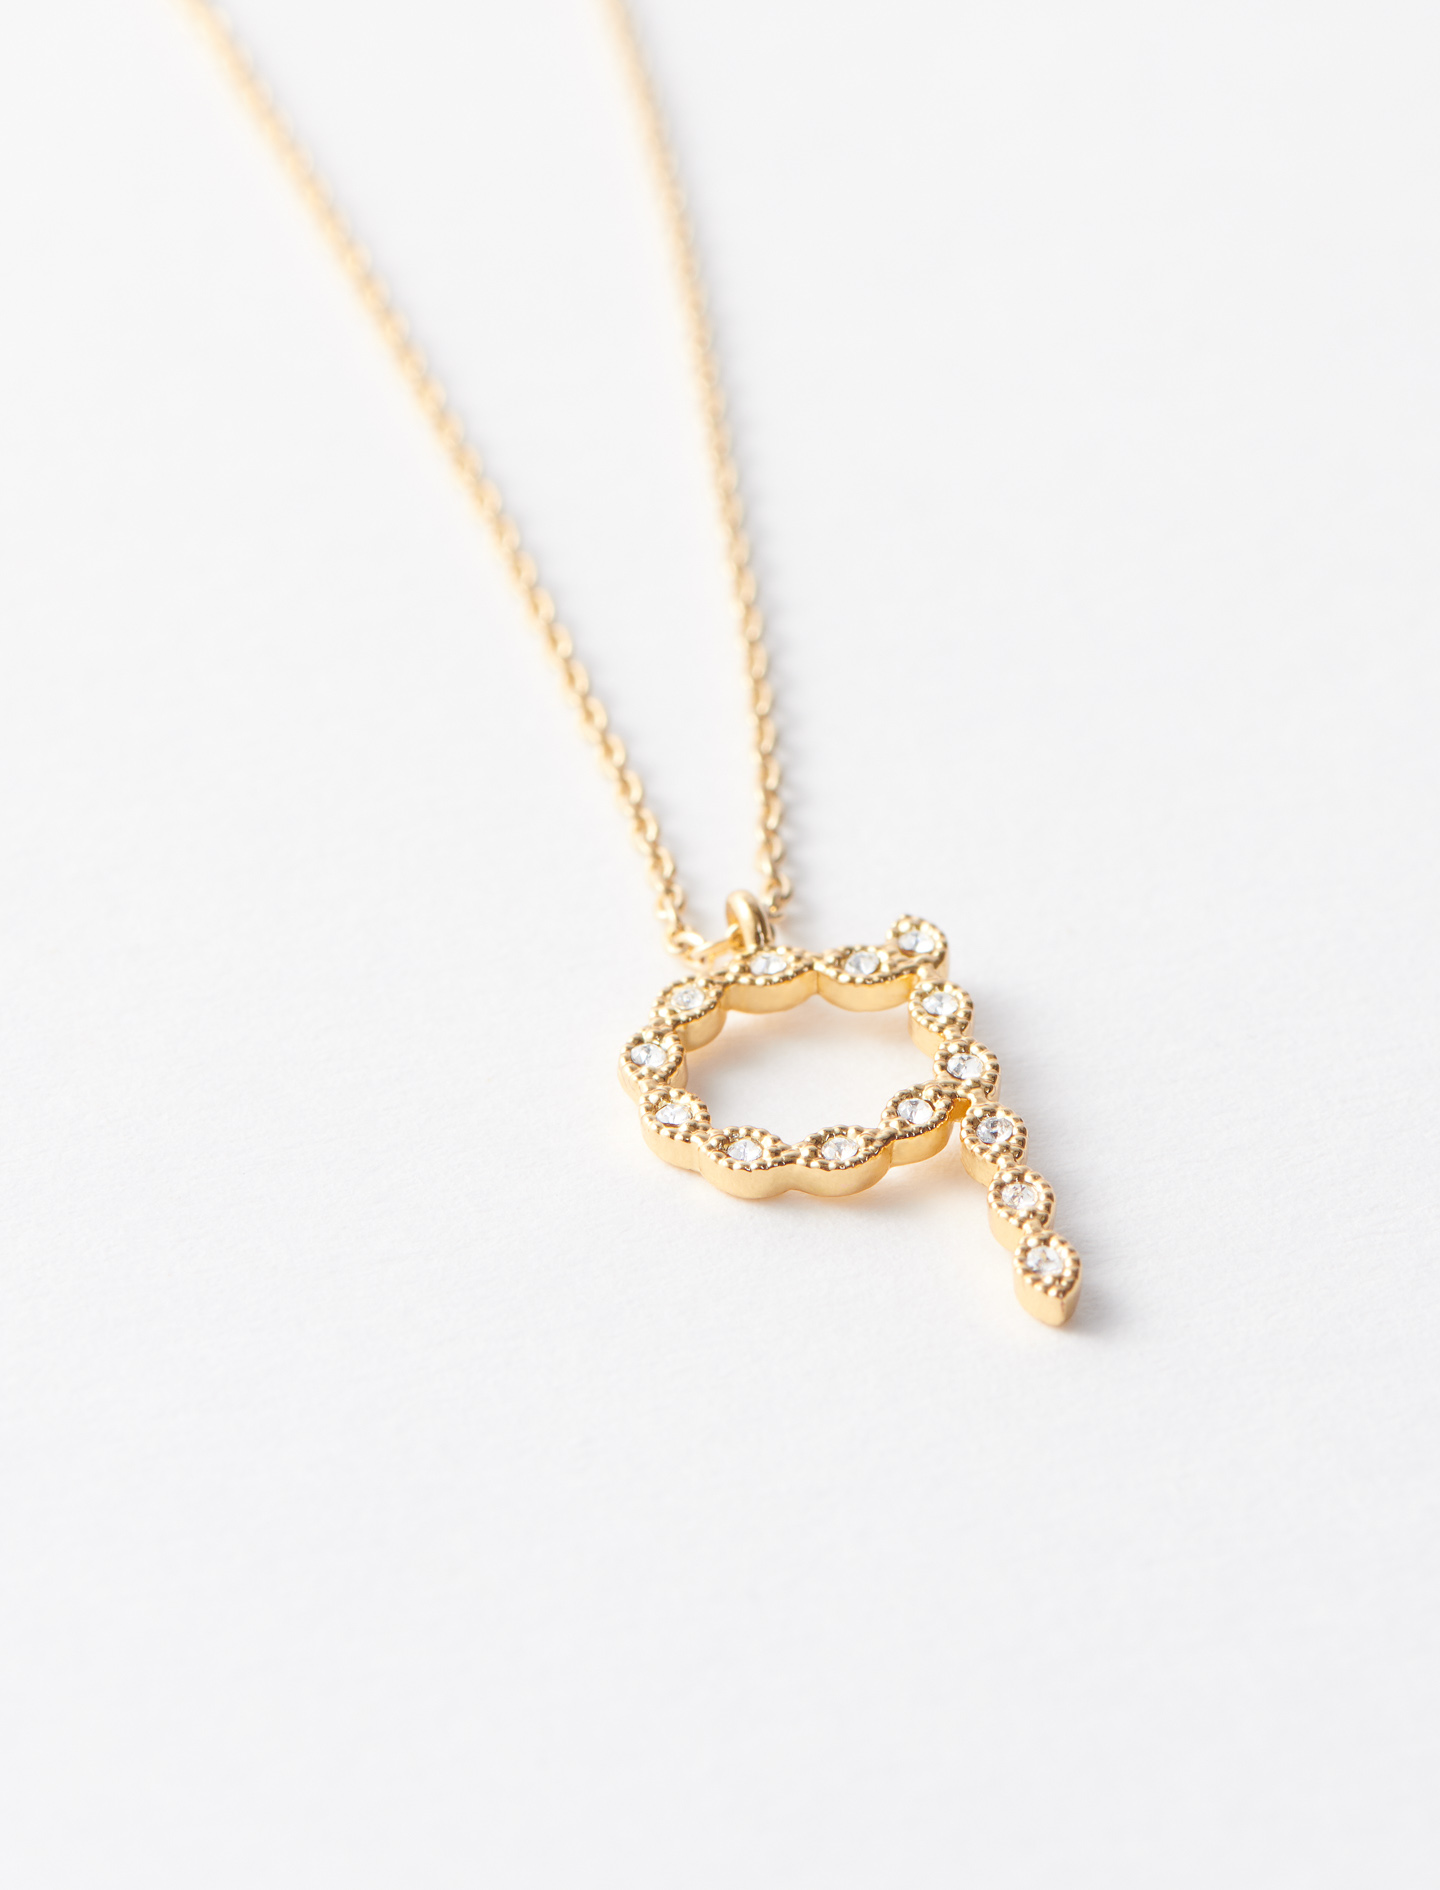 Rhinestone Q necklace - Gold